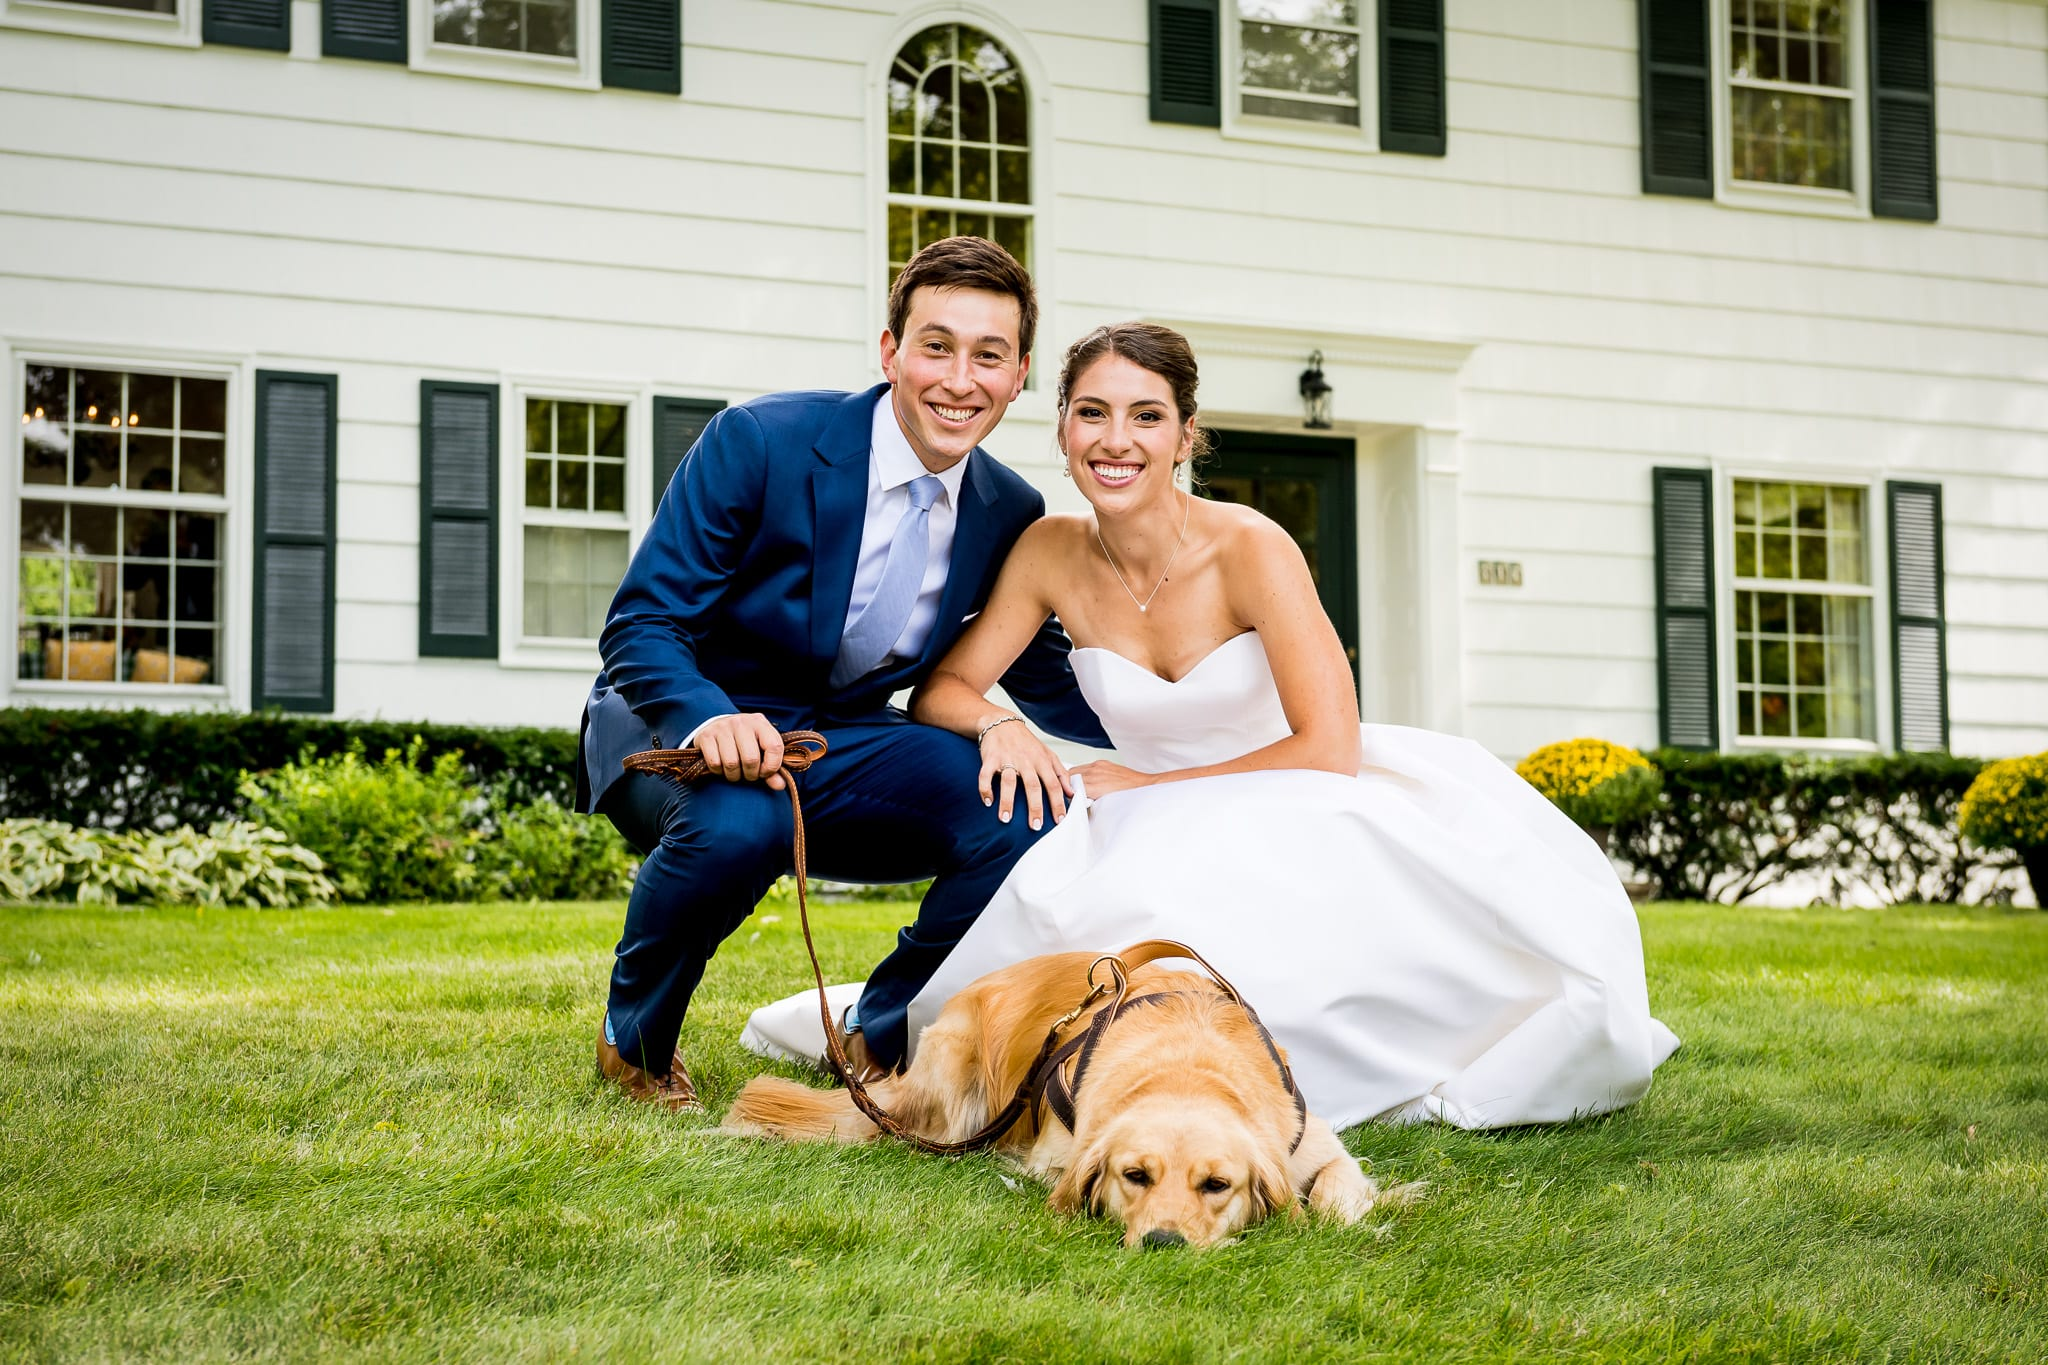 Bride and groom smiling for the camera along with their golden retriever